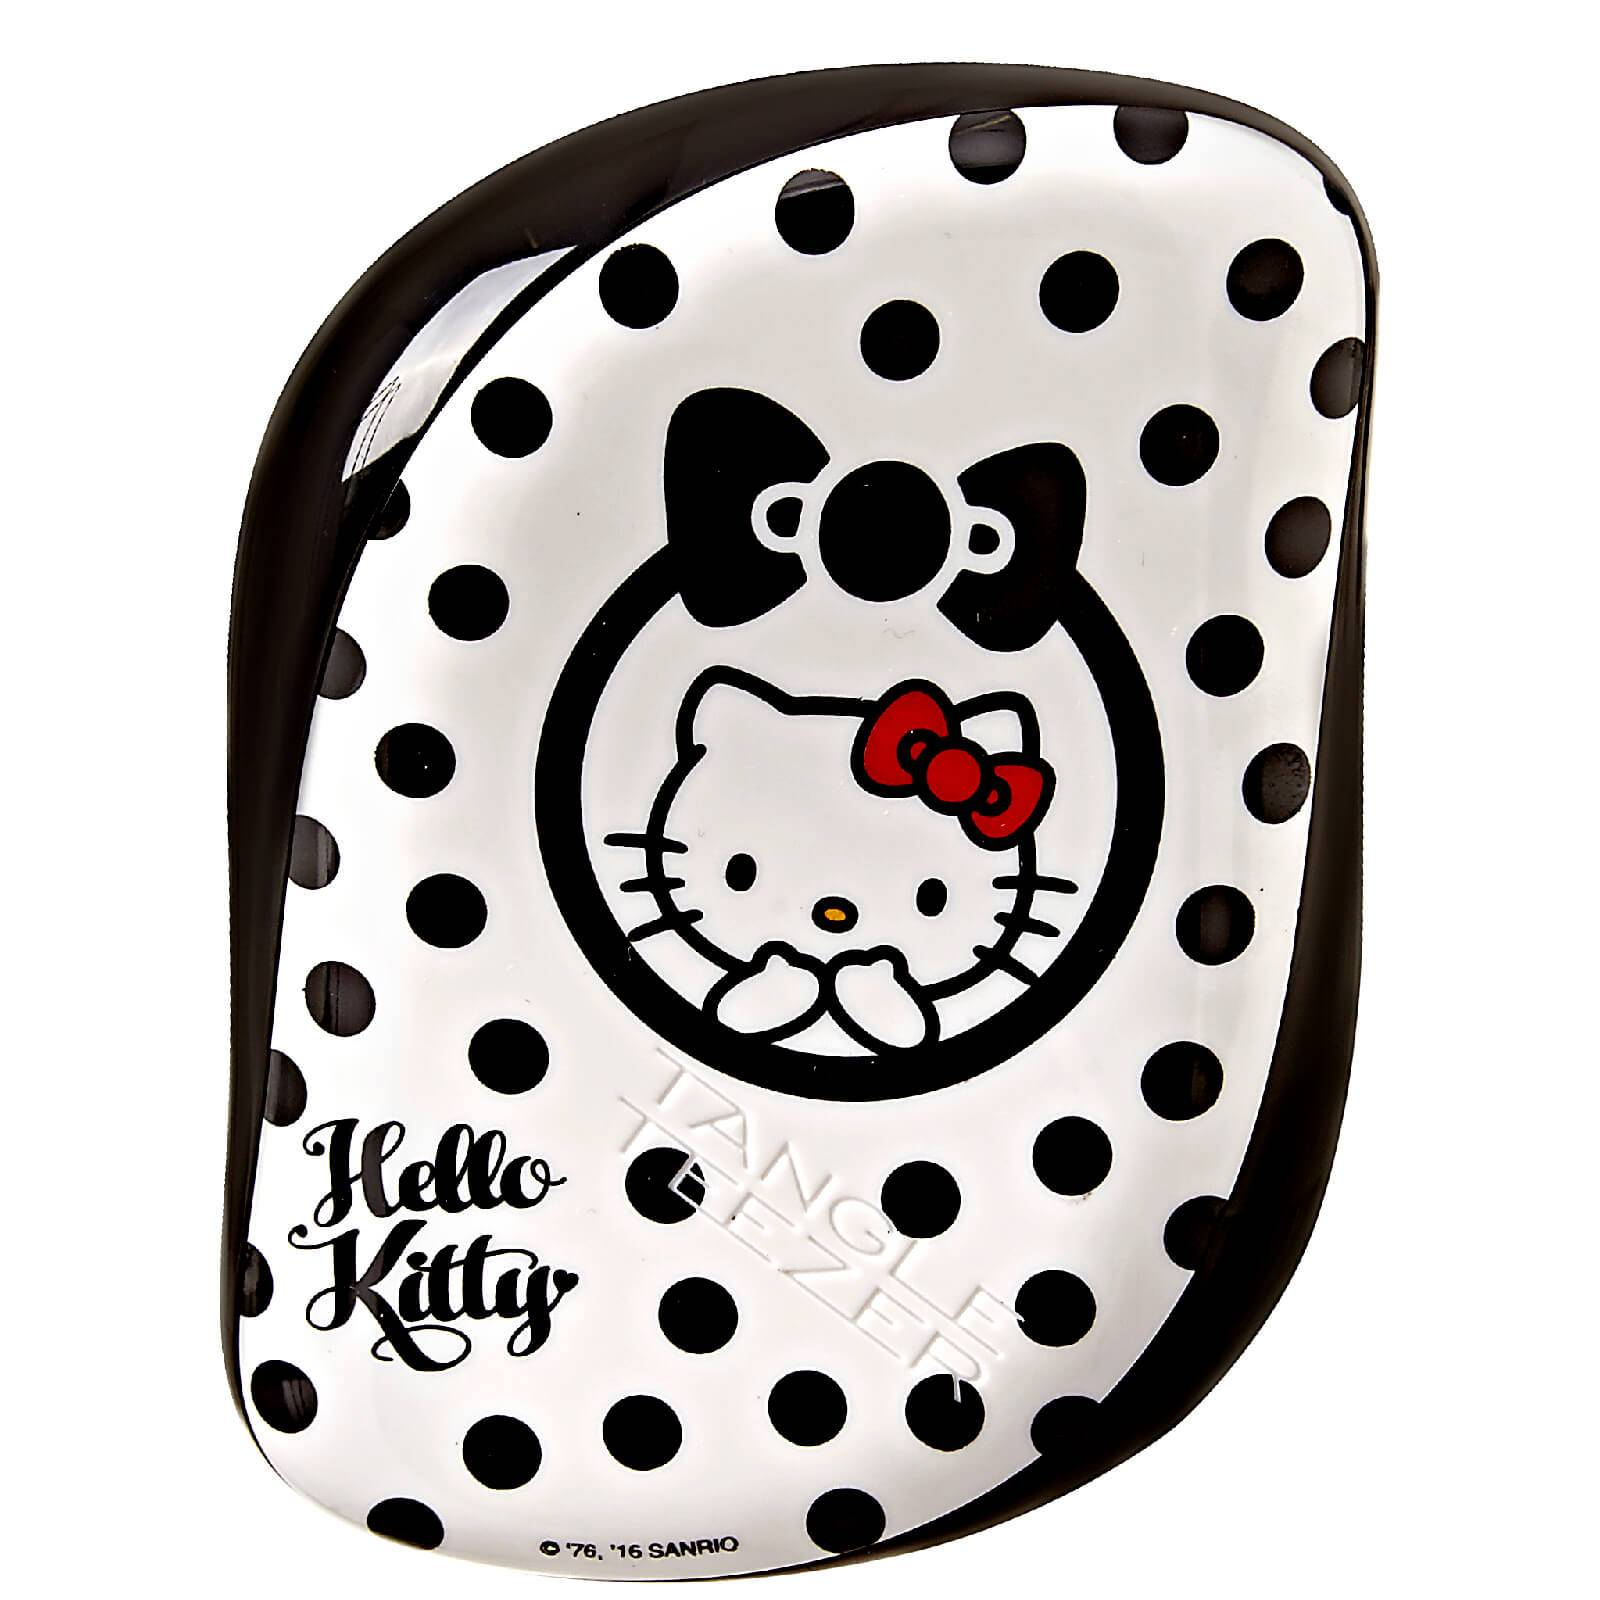 Tangle Teezer Cepillo de Pelo Compact Styler Hello Kitty de  - Negro/Blanco